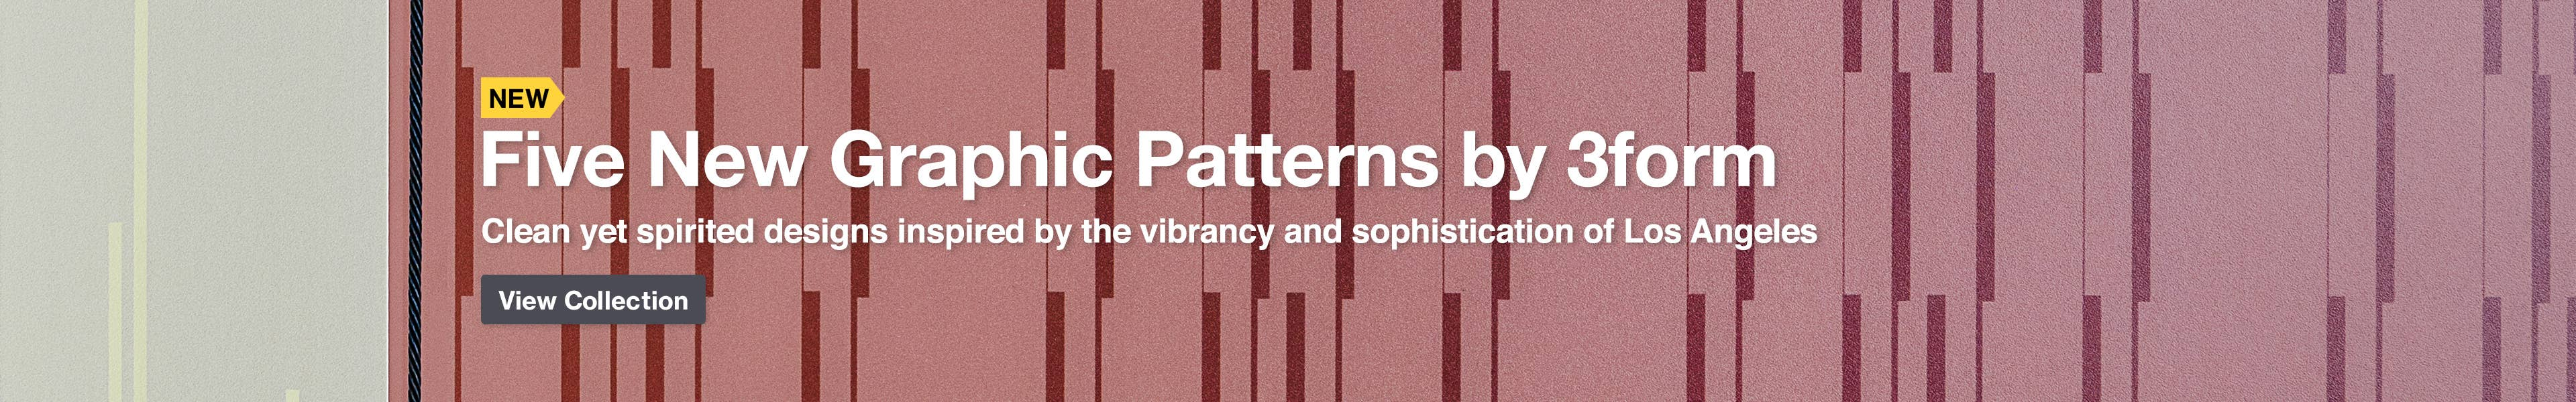 Five New Graphic Patterns